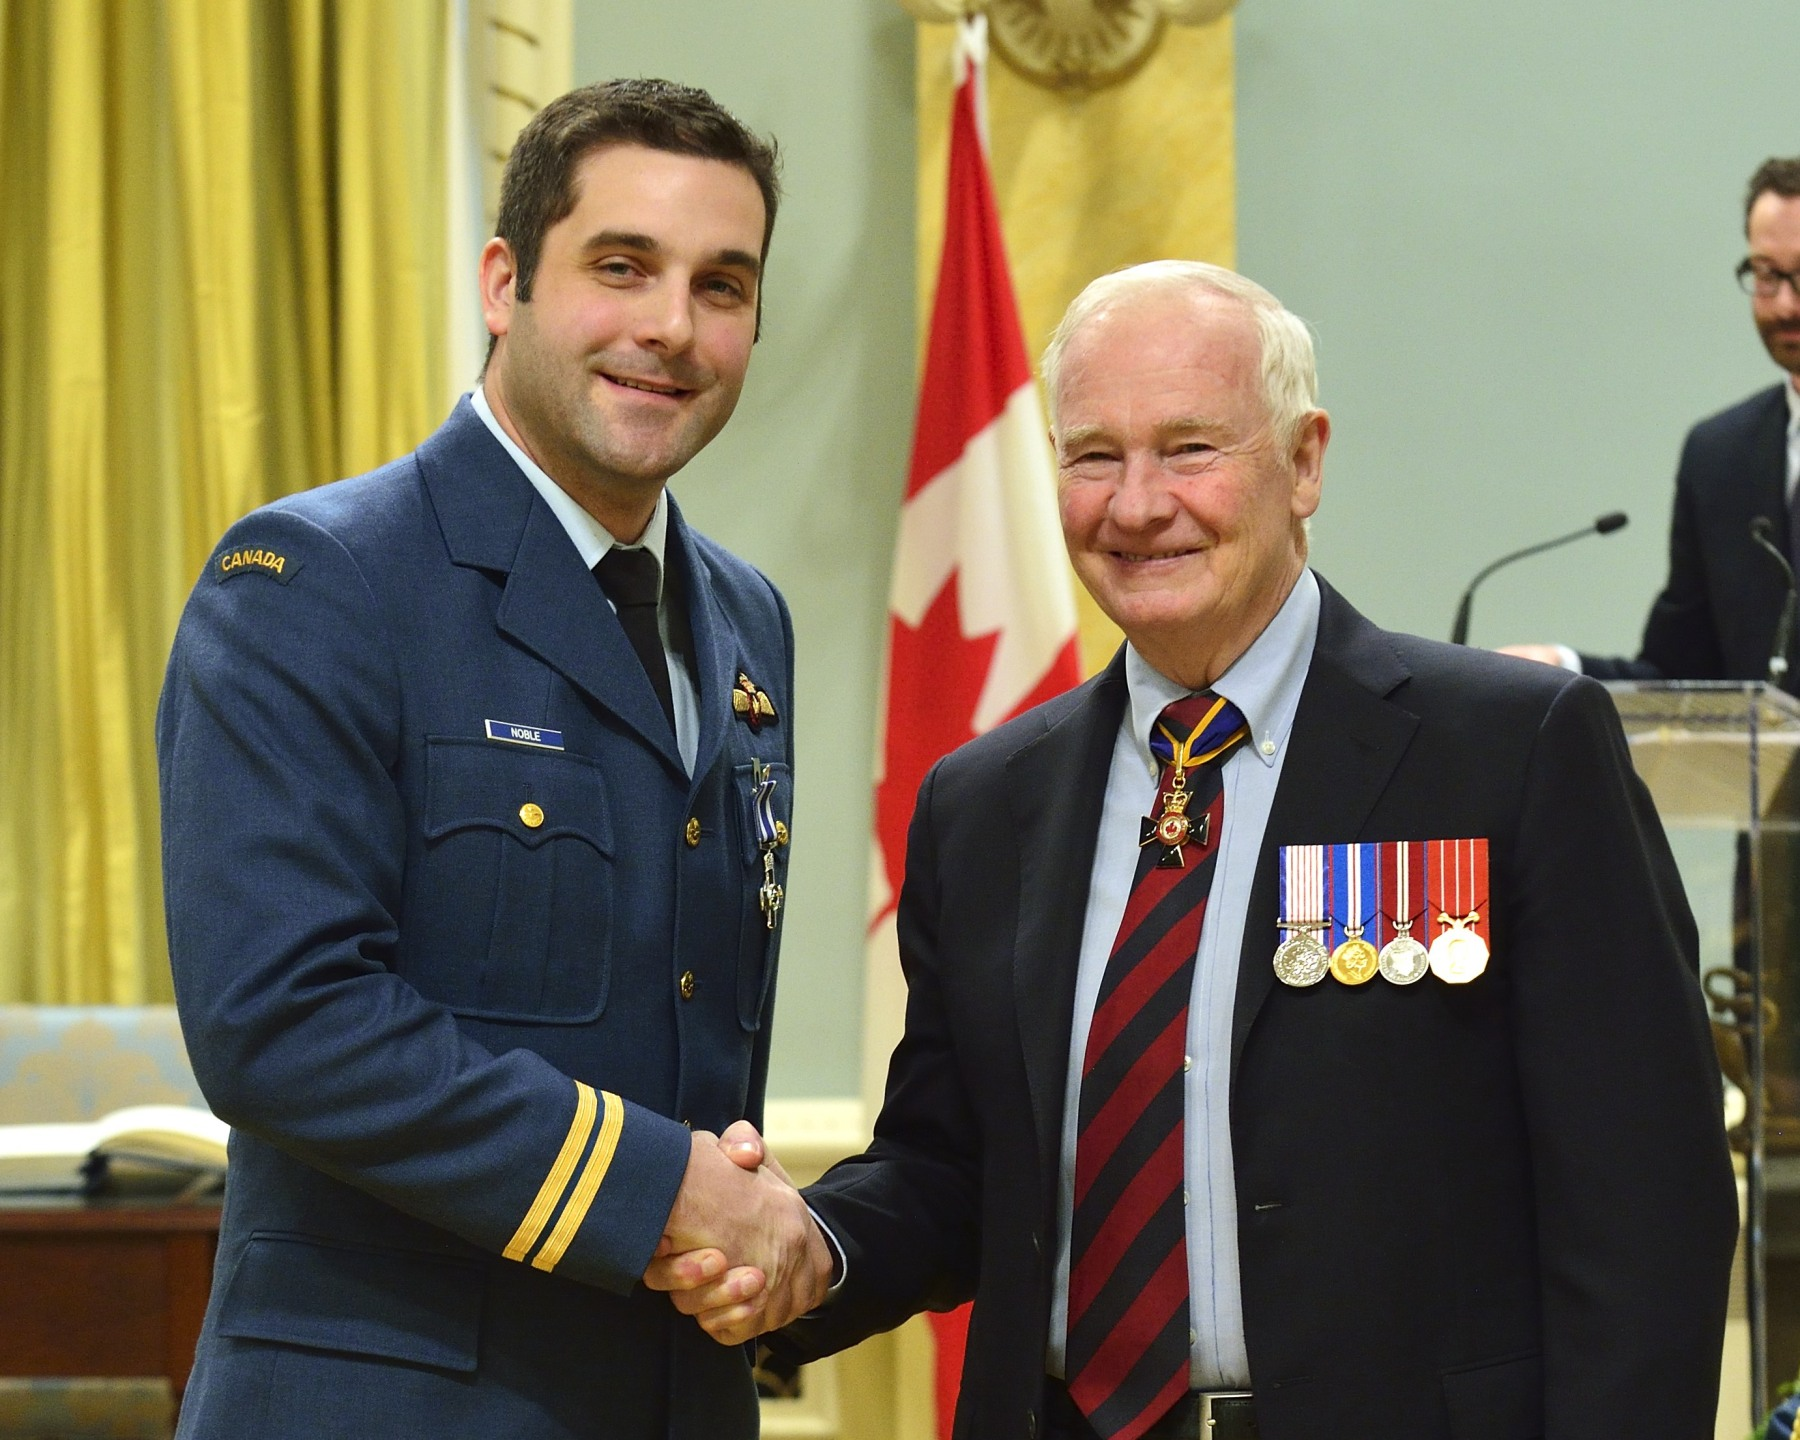 Captain Aaron Noble, M.S.C. (Burnaby, British Columbia) also received the Meritorious Service Cross. On October 27, 2011, aircraft commander Captain Noble, onboard Rescue 915, was tasked with rescuing two hunters stranded in Foxe Basin, near Igloolik, Nunavut. The mission would require over 2 000 kilometres of travel, far exceeding the maximum aircrew day. Despite aircraft limitations, adverse weather conditions and compounding operational complexities, Captain Noble expertly planned and executed his mission, saving the lives of the two hunters, and recovering the three search and rescue technicians who had parachuted in to assist them.